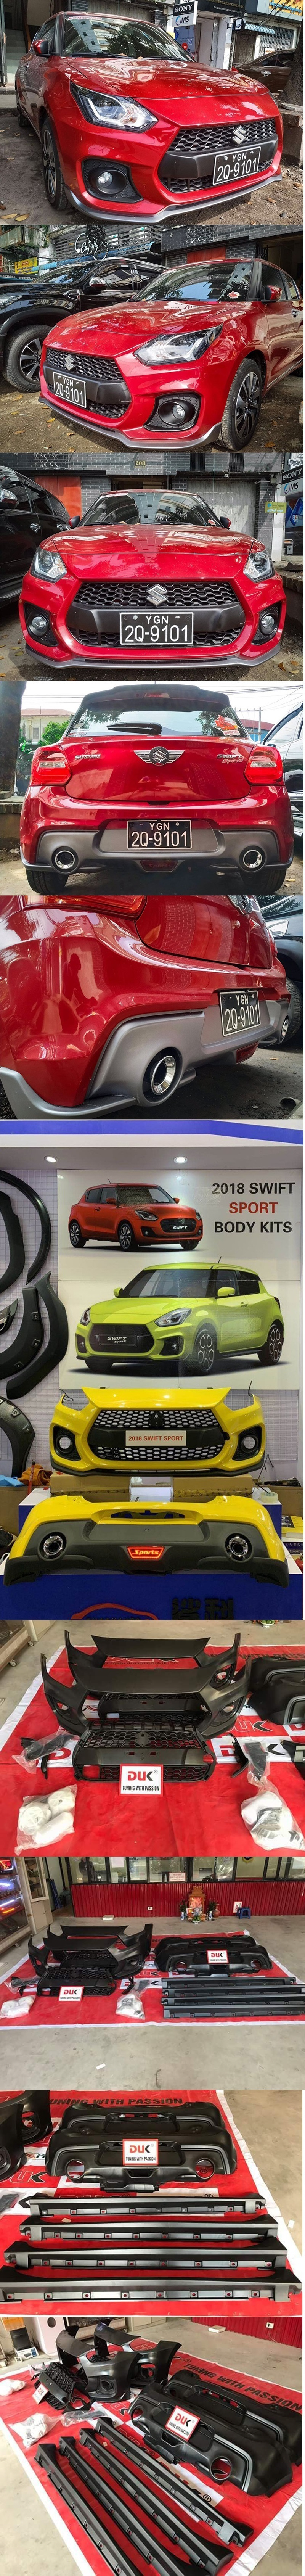 BODY KIT SPORT CHO SUZUKI SWIFT 2019